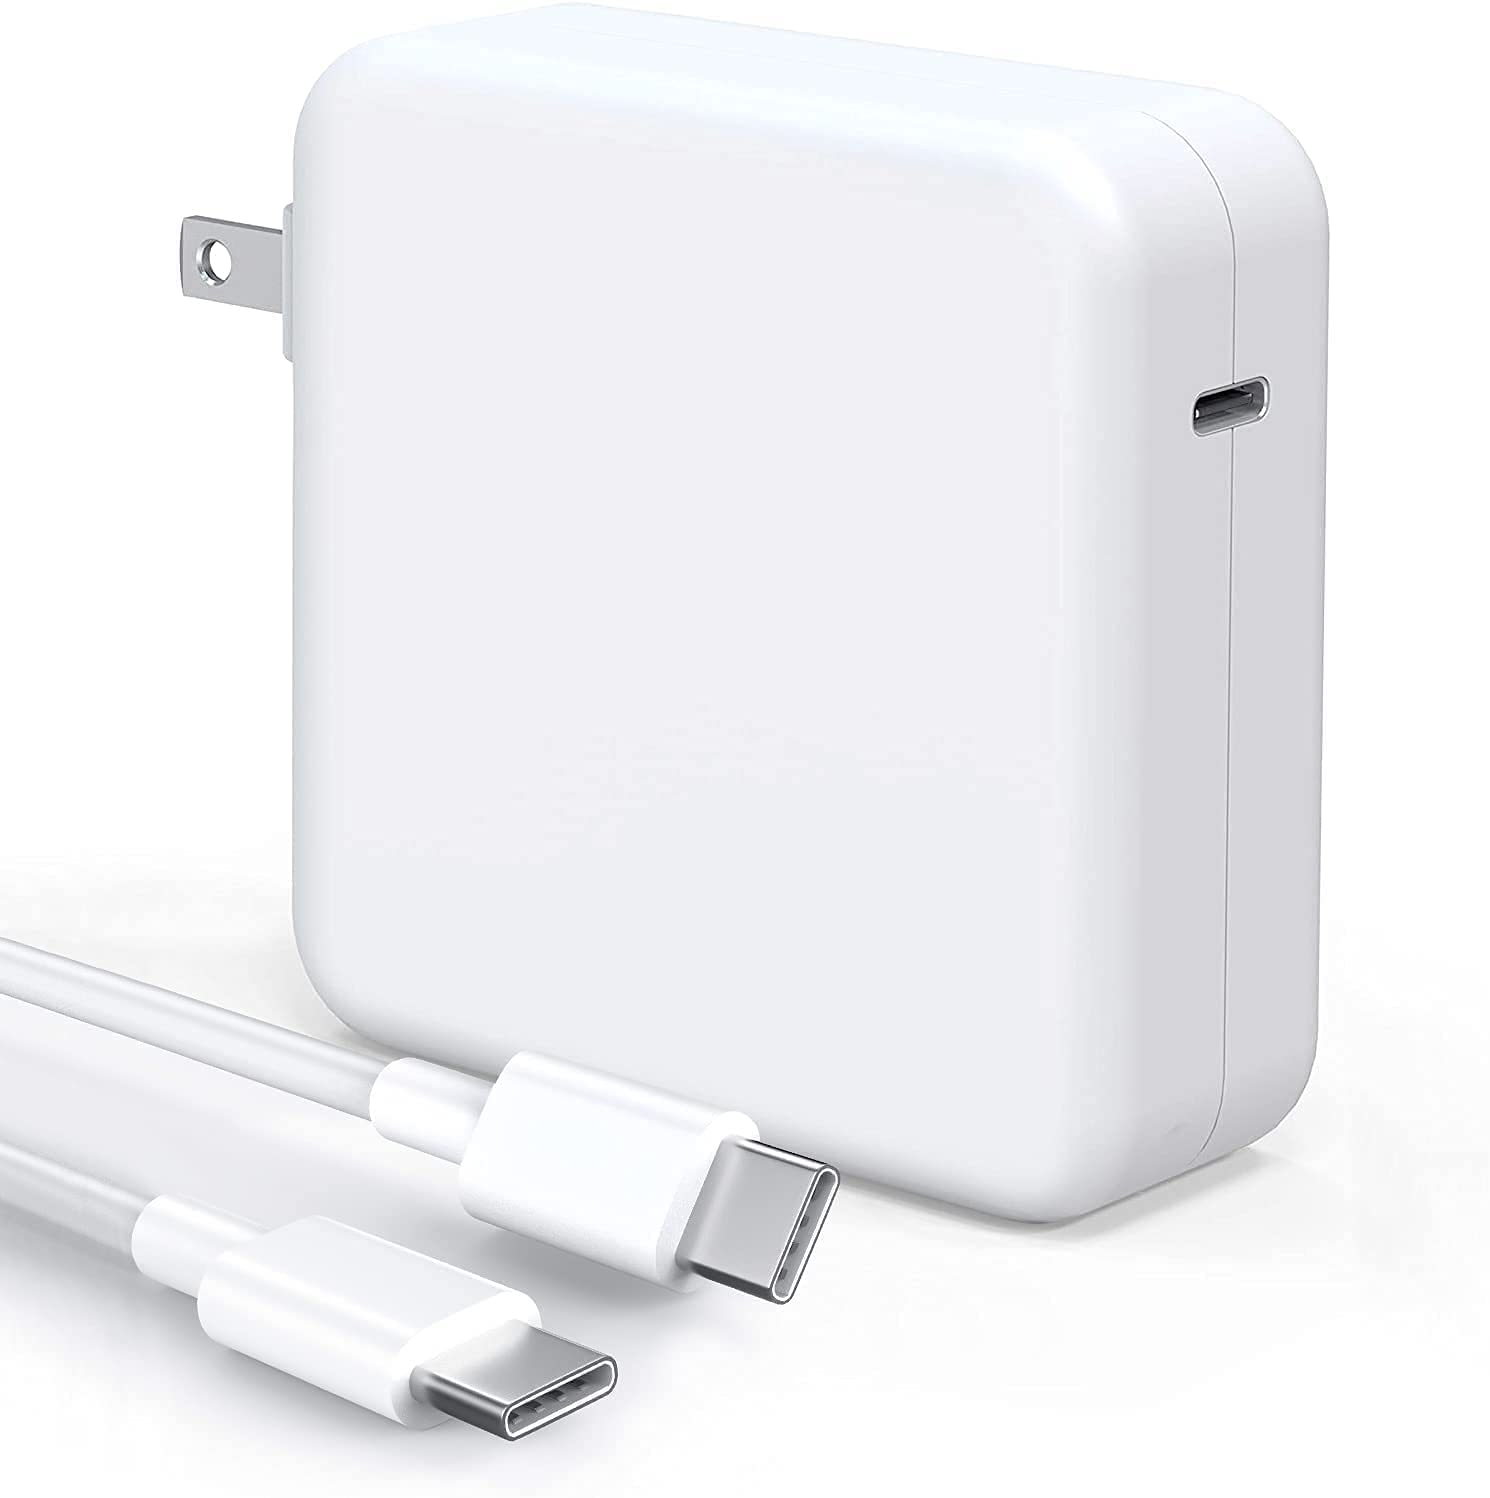 Mac Book Pro Charger - 100W USB C Charger Power Adapter Compatible with MacBook Pro 16, 15, 13 Inch, MacBook Air 13 Inch, iPad Pro 2021/2020/2019/2018, Included 7.2ft USB C to C Cable : Electronics